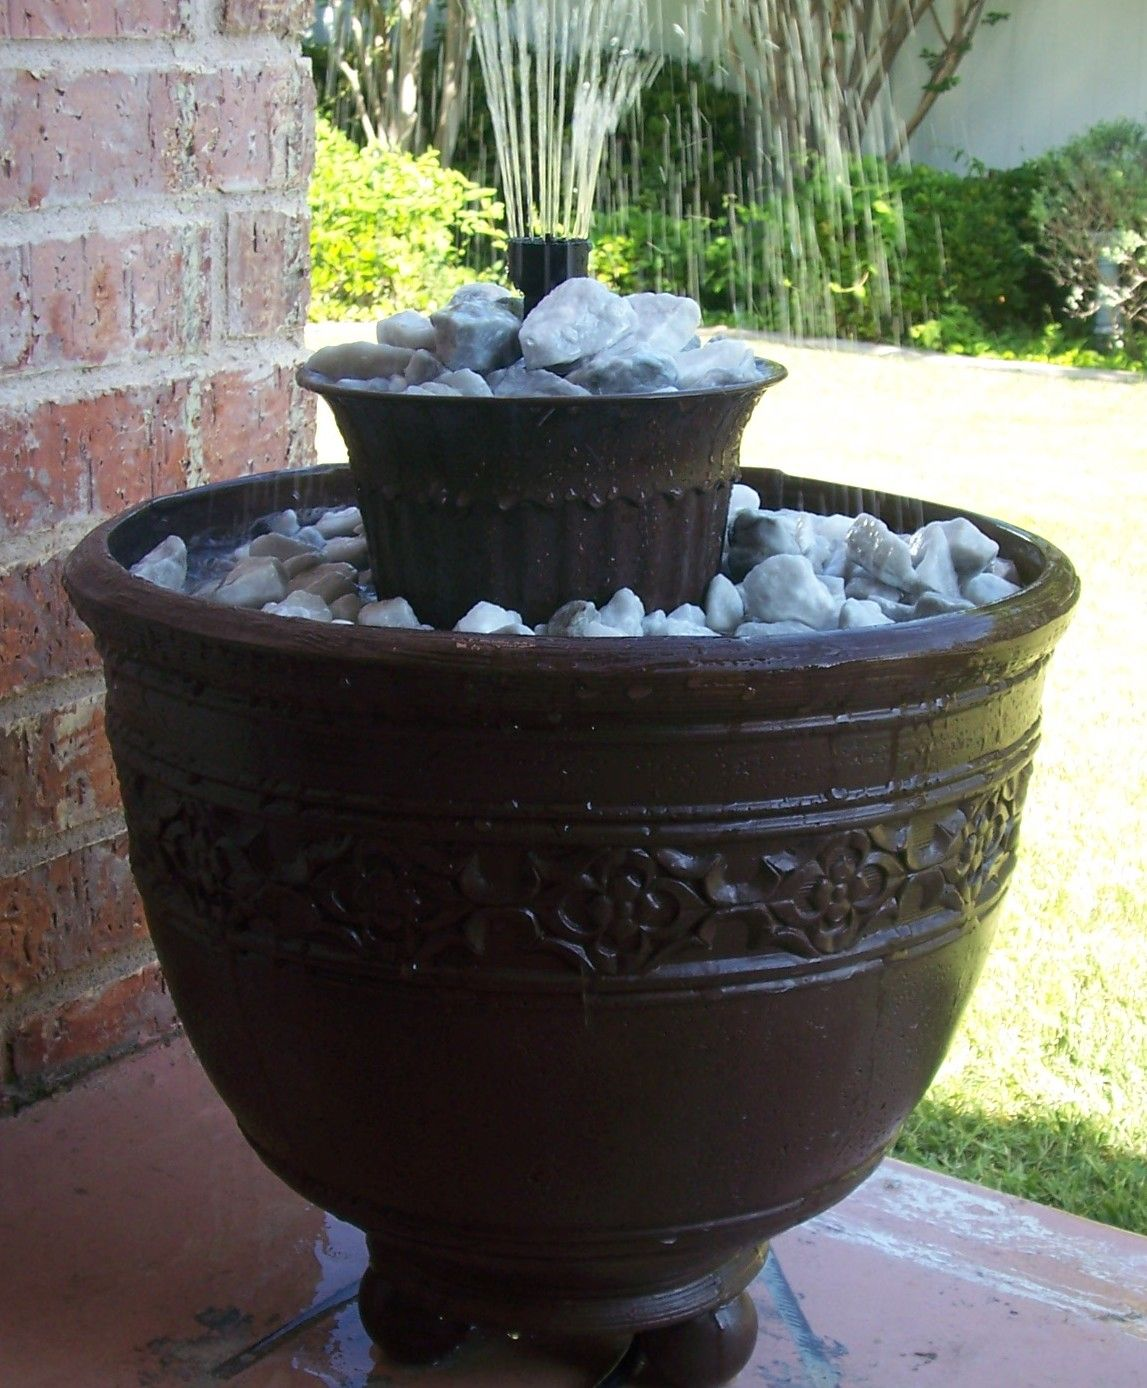 Pin by touch of the goddess on garden pinterest diy water pin by touch of the goddess on garden pinterest diy water fountain water fountains and fountain solutioingenieria Images